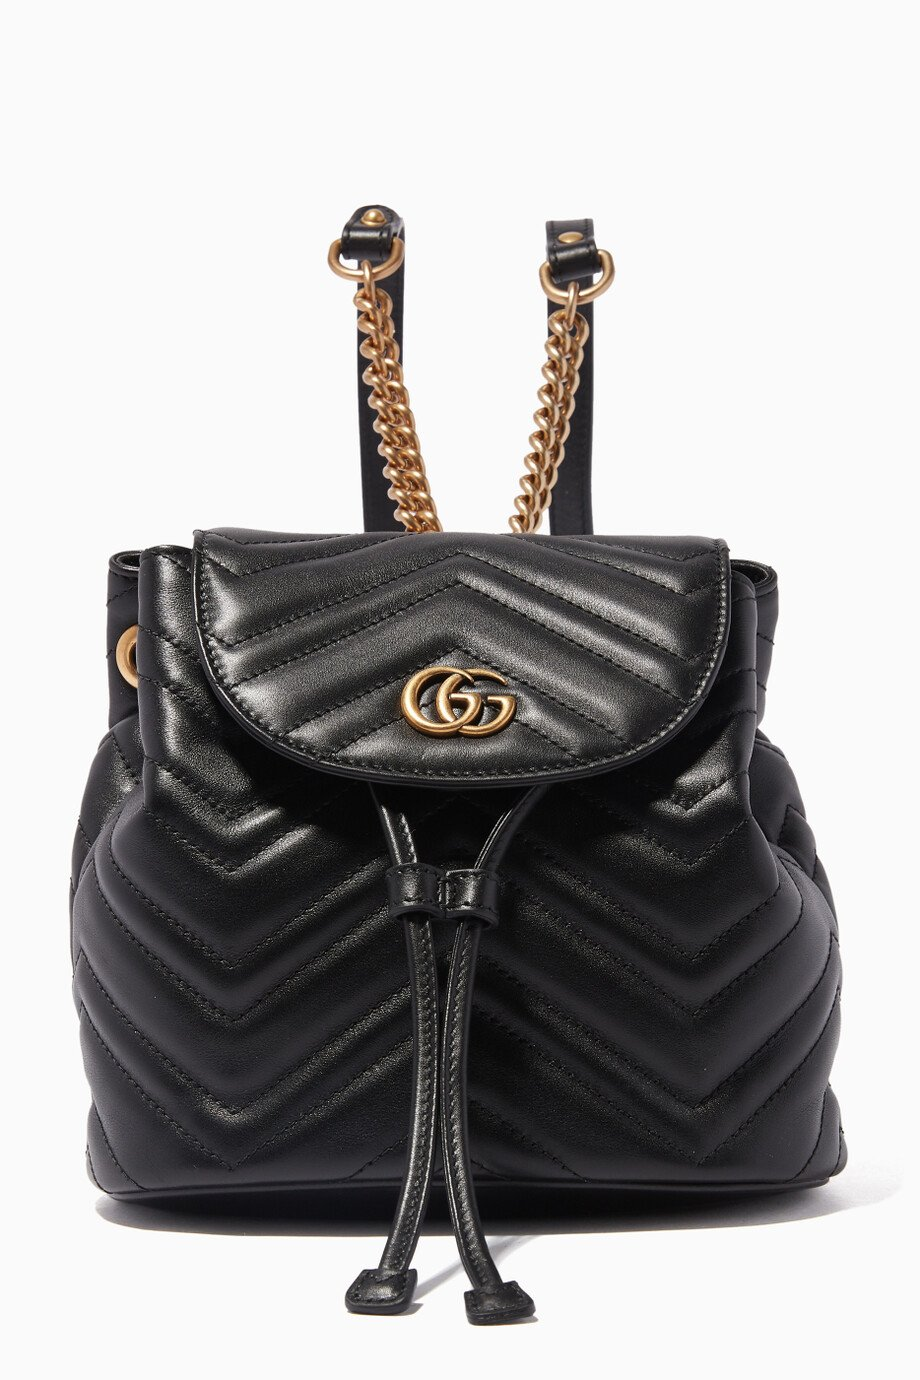 7a5eb0147e92 Shop Gucci Black Black Mini GG Marmont 2.0 Leather Backpack for ...